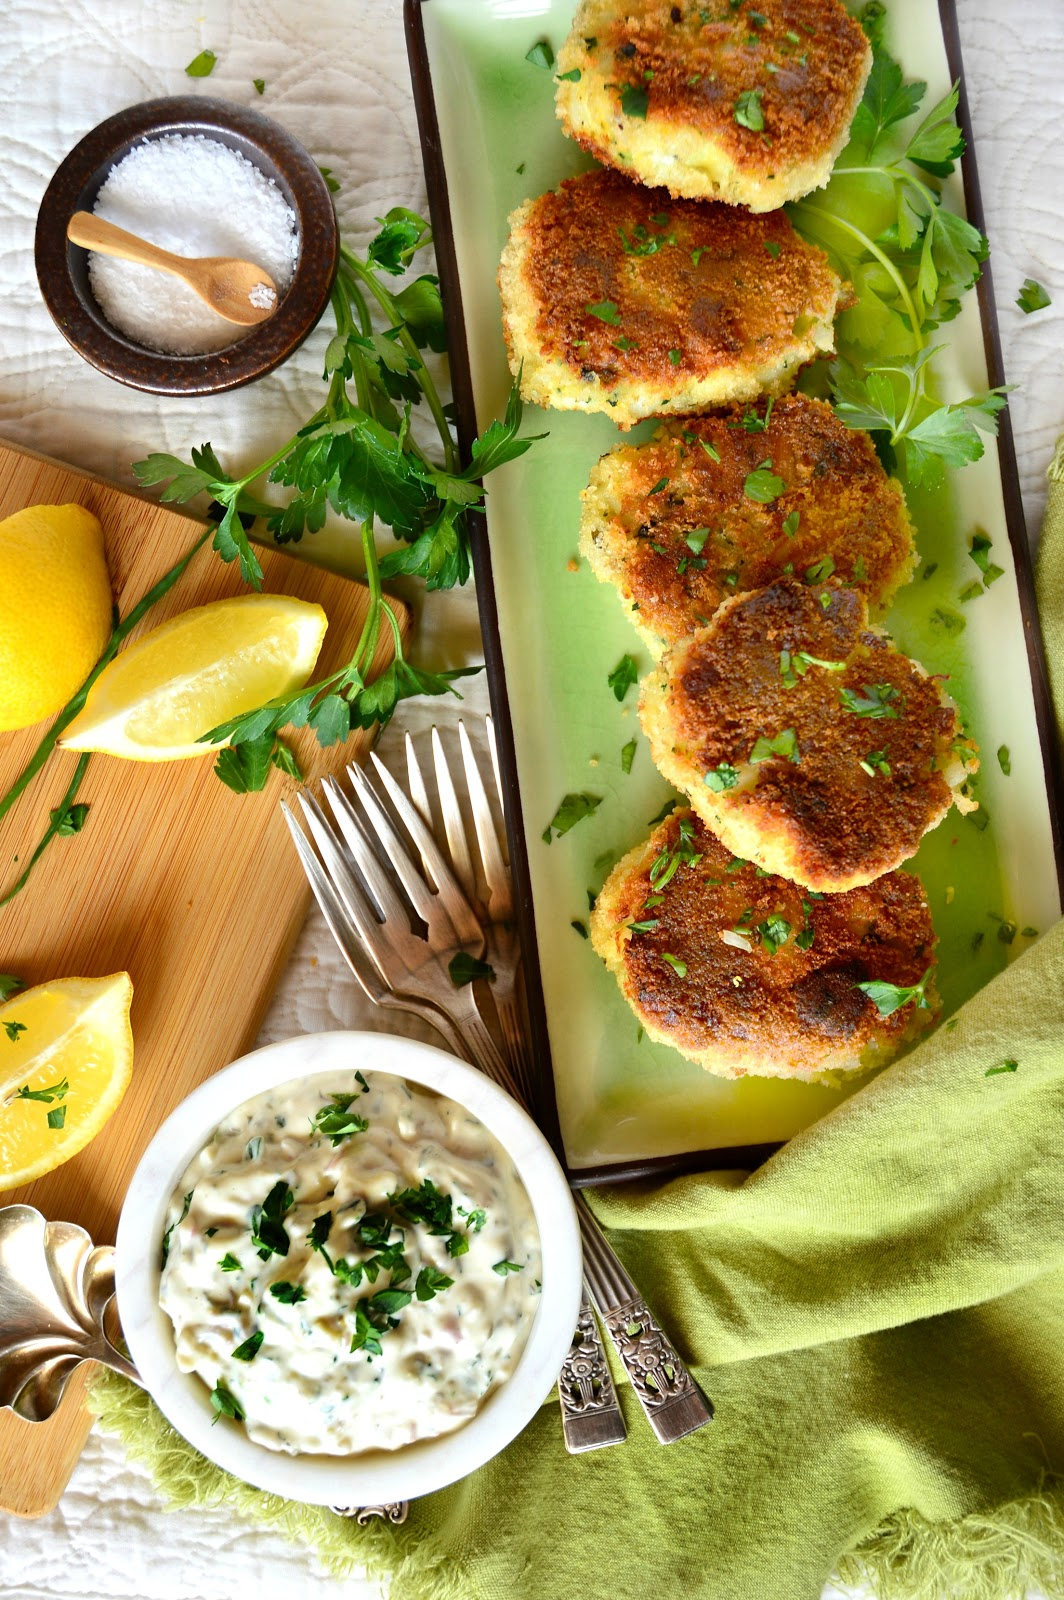 Irish Fish Cakes are savory cakes made with milk simmered cod and mashed potatoes. One might think these are entirely made of fish because of their flakey soft interiors.  Topped with a simply homemade tartar sauce, these are a winner in my book! #seafood #Irishfood #fishcakes #tartarsauce www.thisishowicook.com